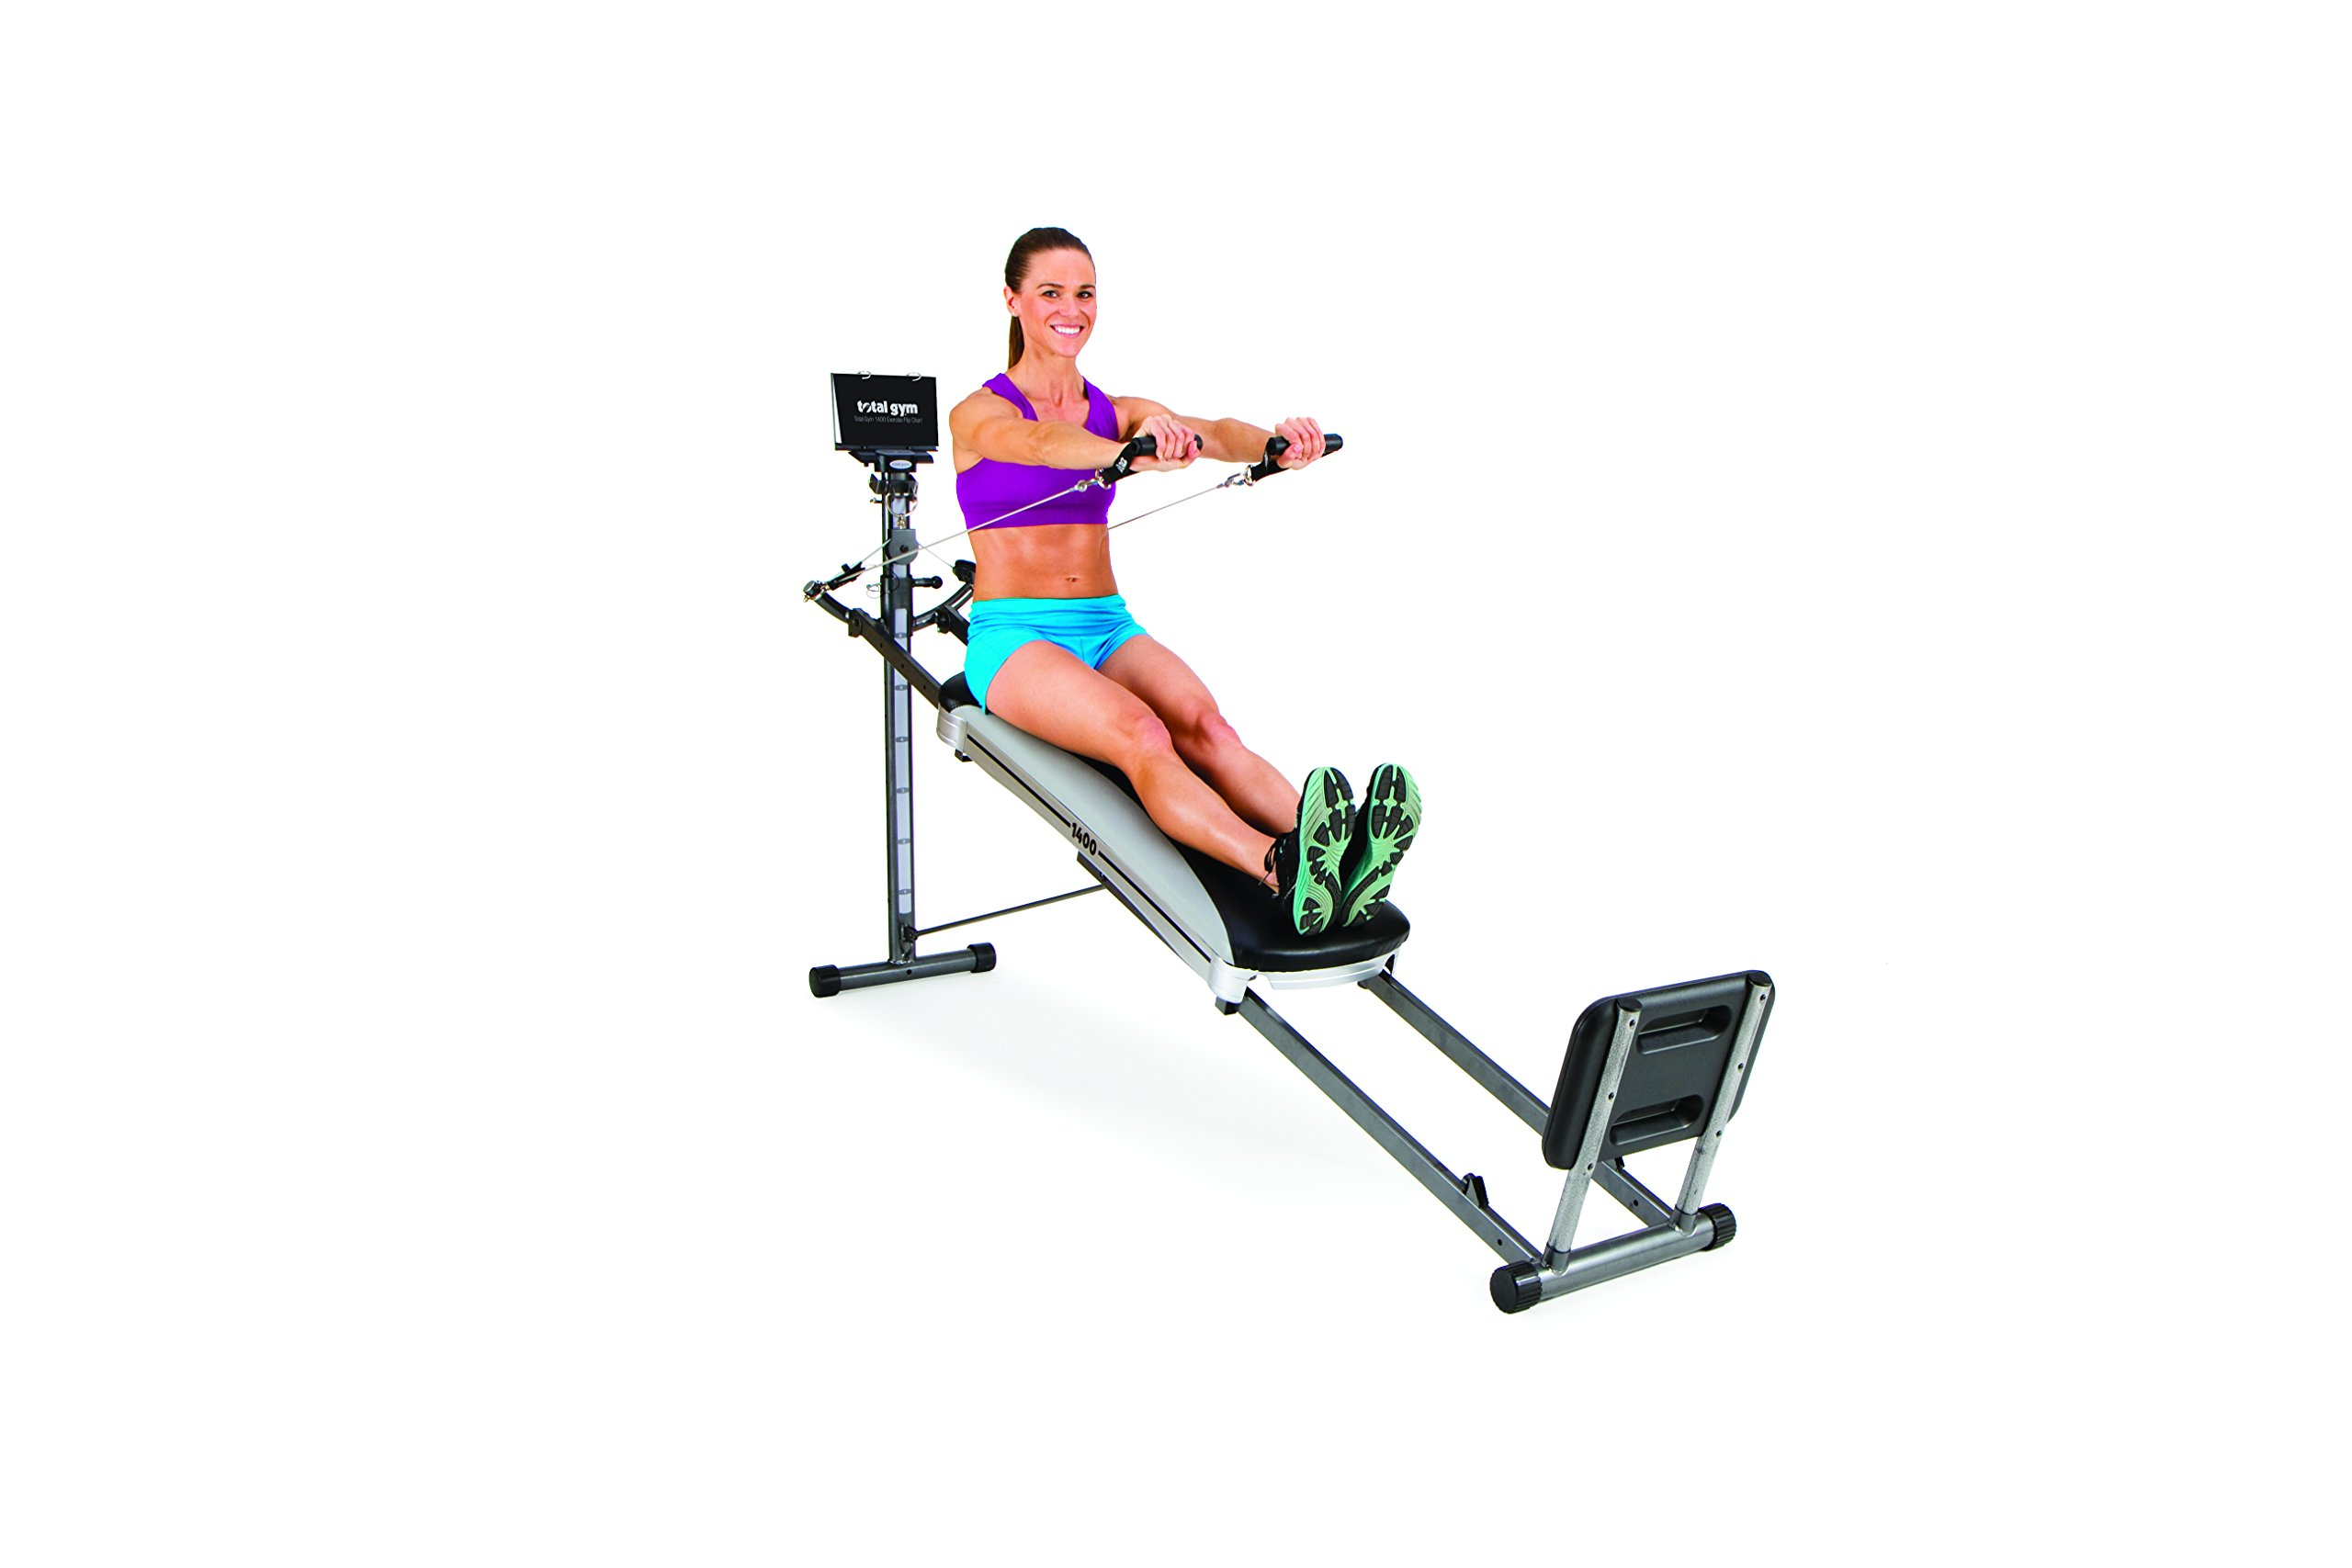 Total Gym 1400 Leg Exercise Machines by Total Gym (Image #5)